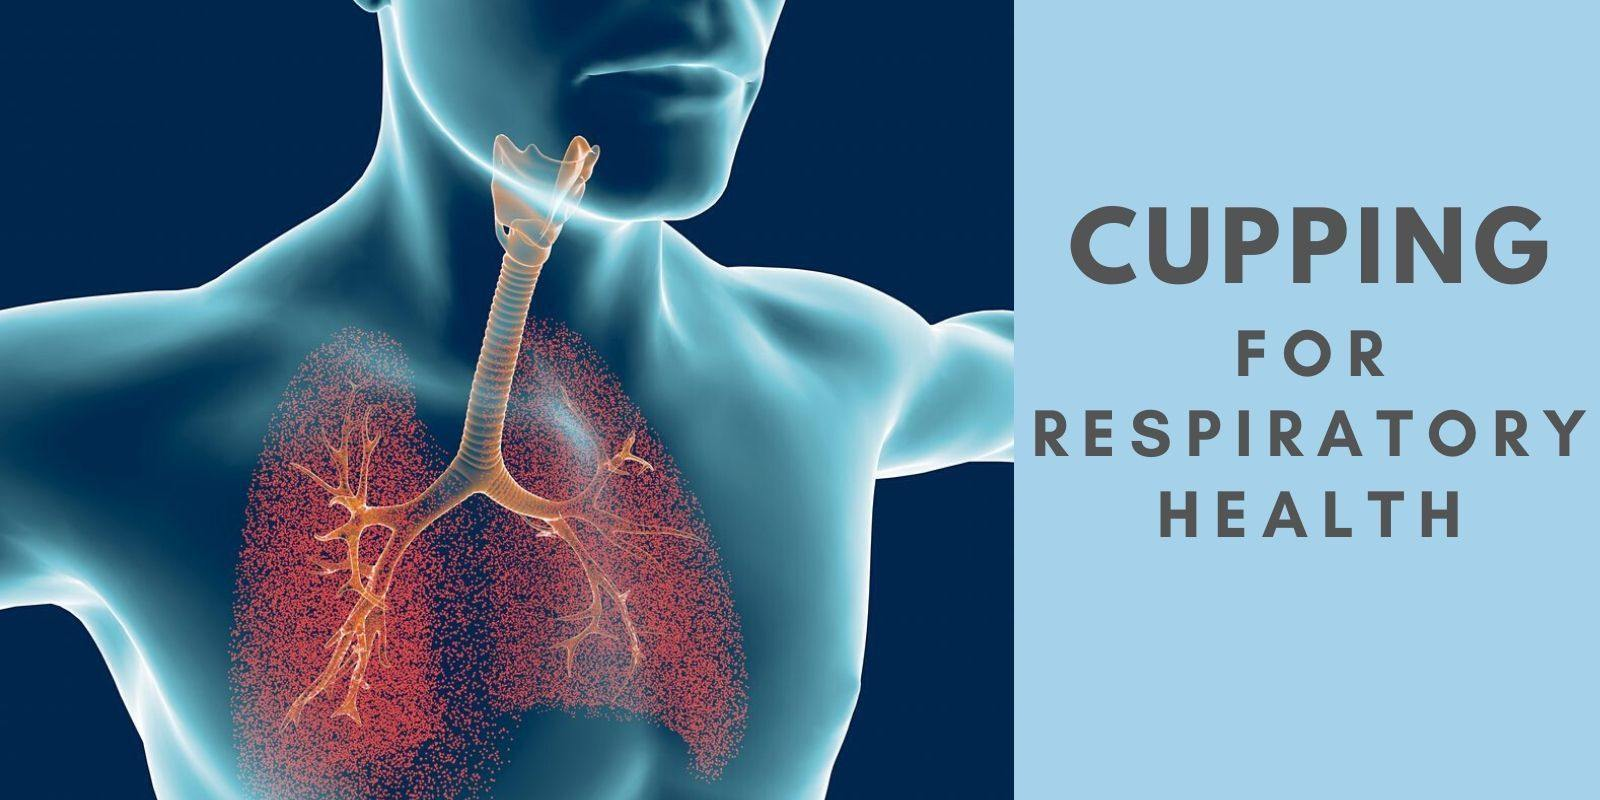 Cupping for Respiratory Health - Lure Essentials